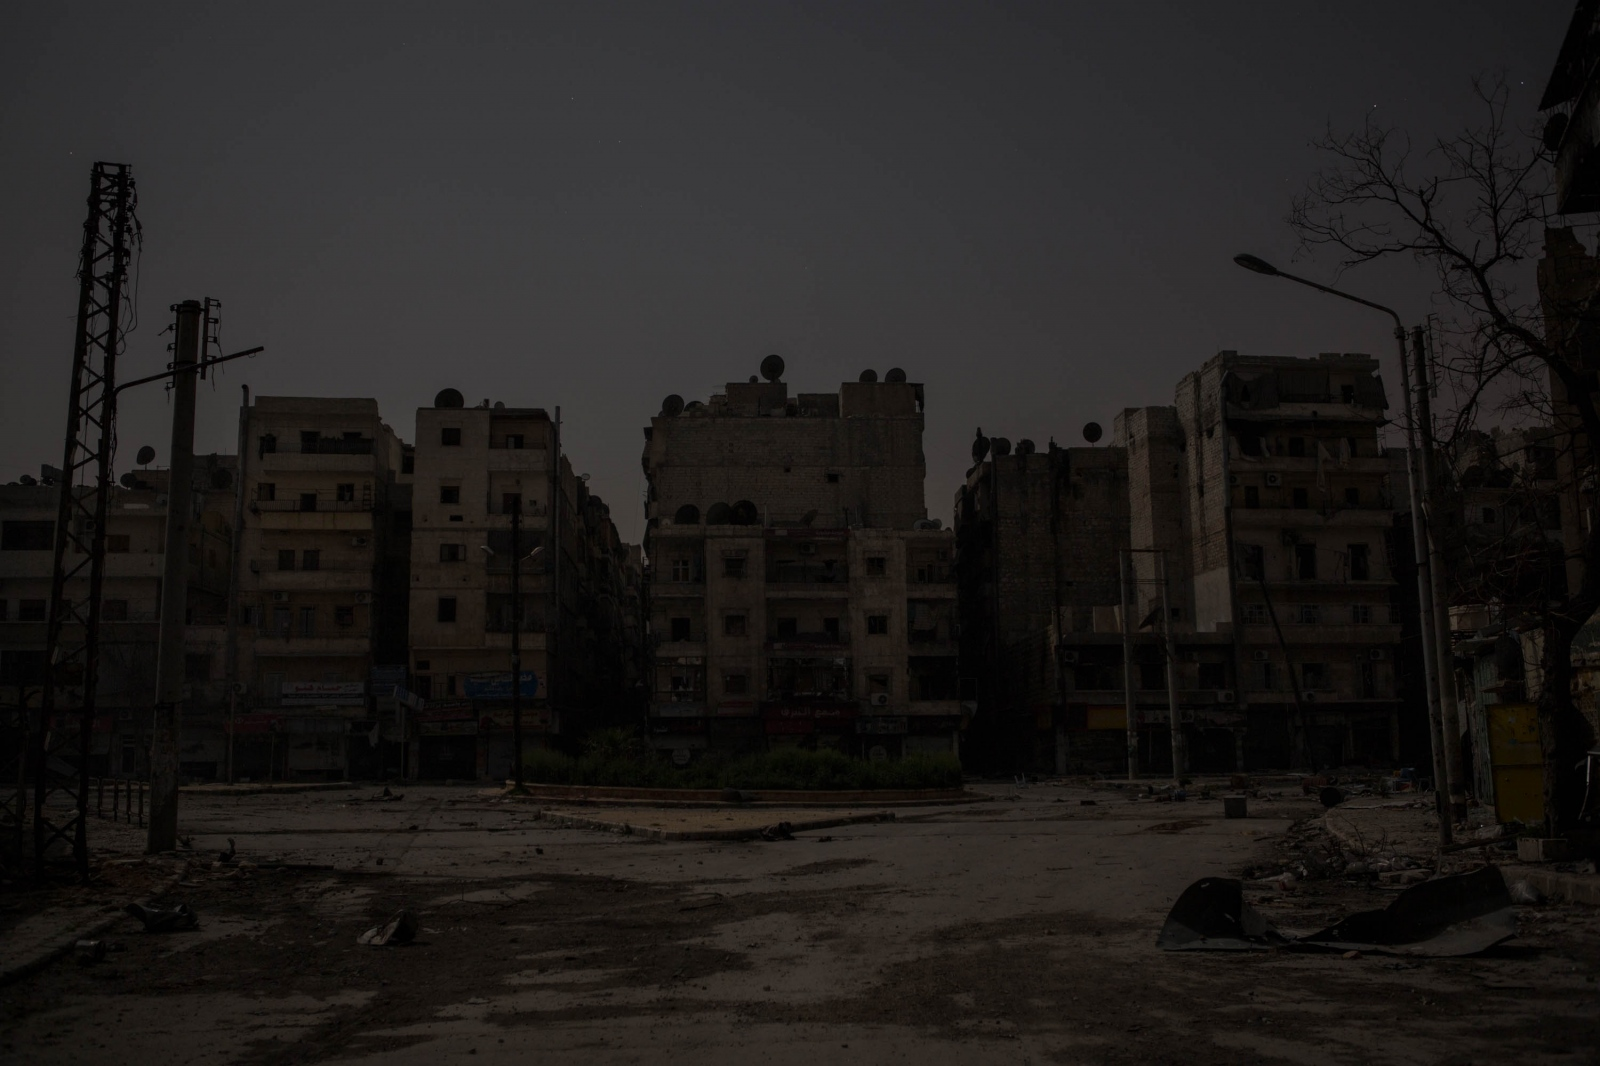 A view of a destroyed section of the Salaheddin neighborhood of Aleppo, Syria. 2013.